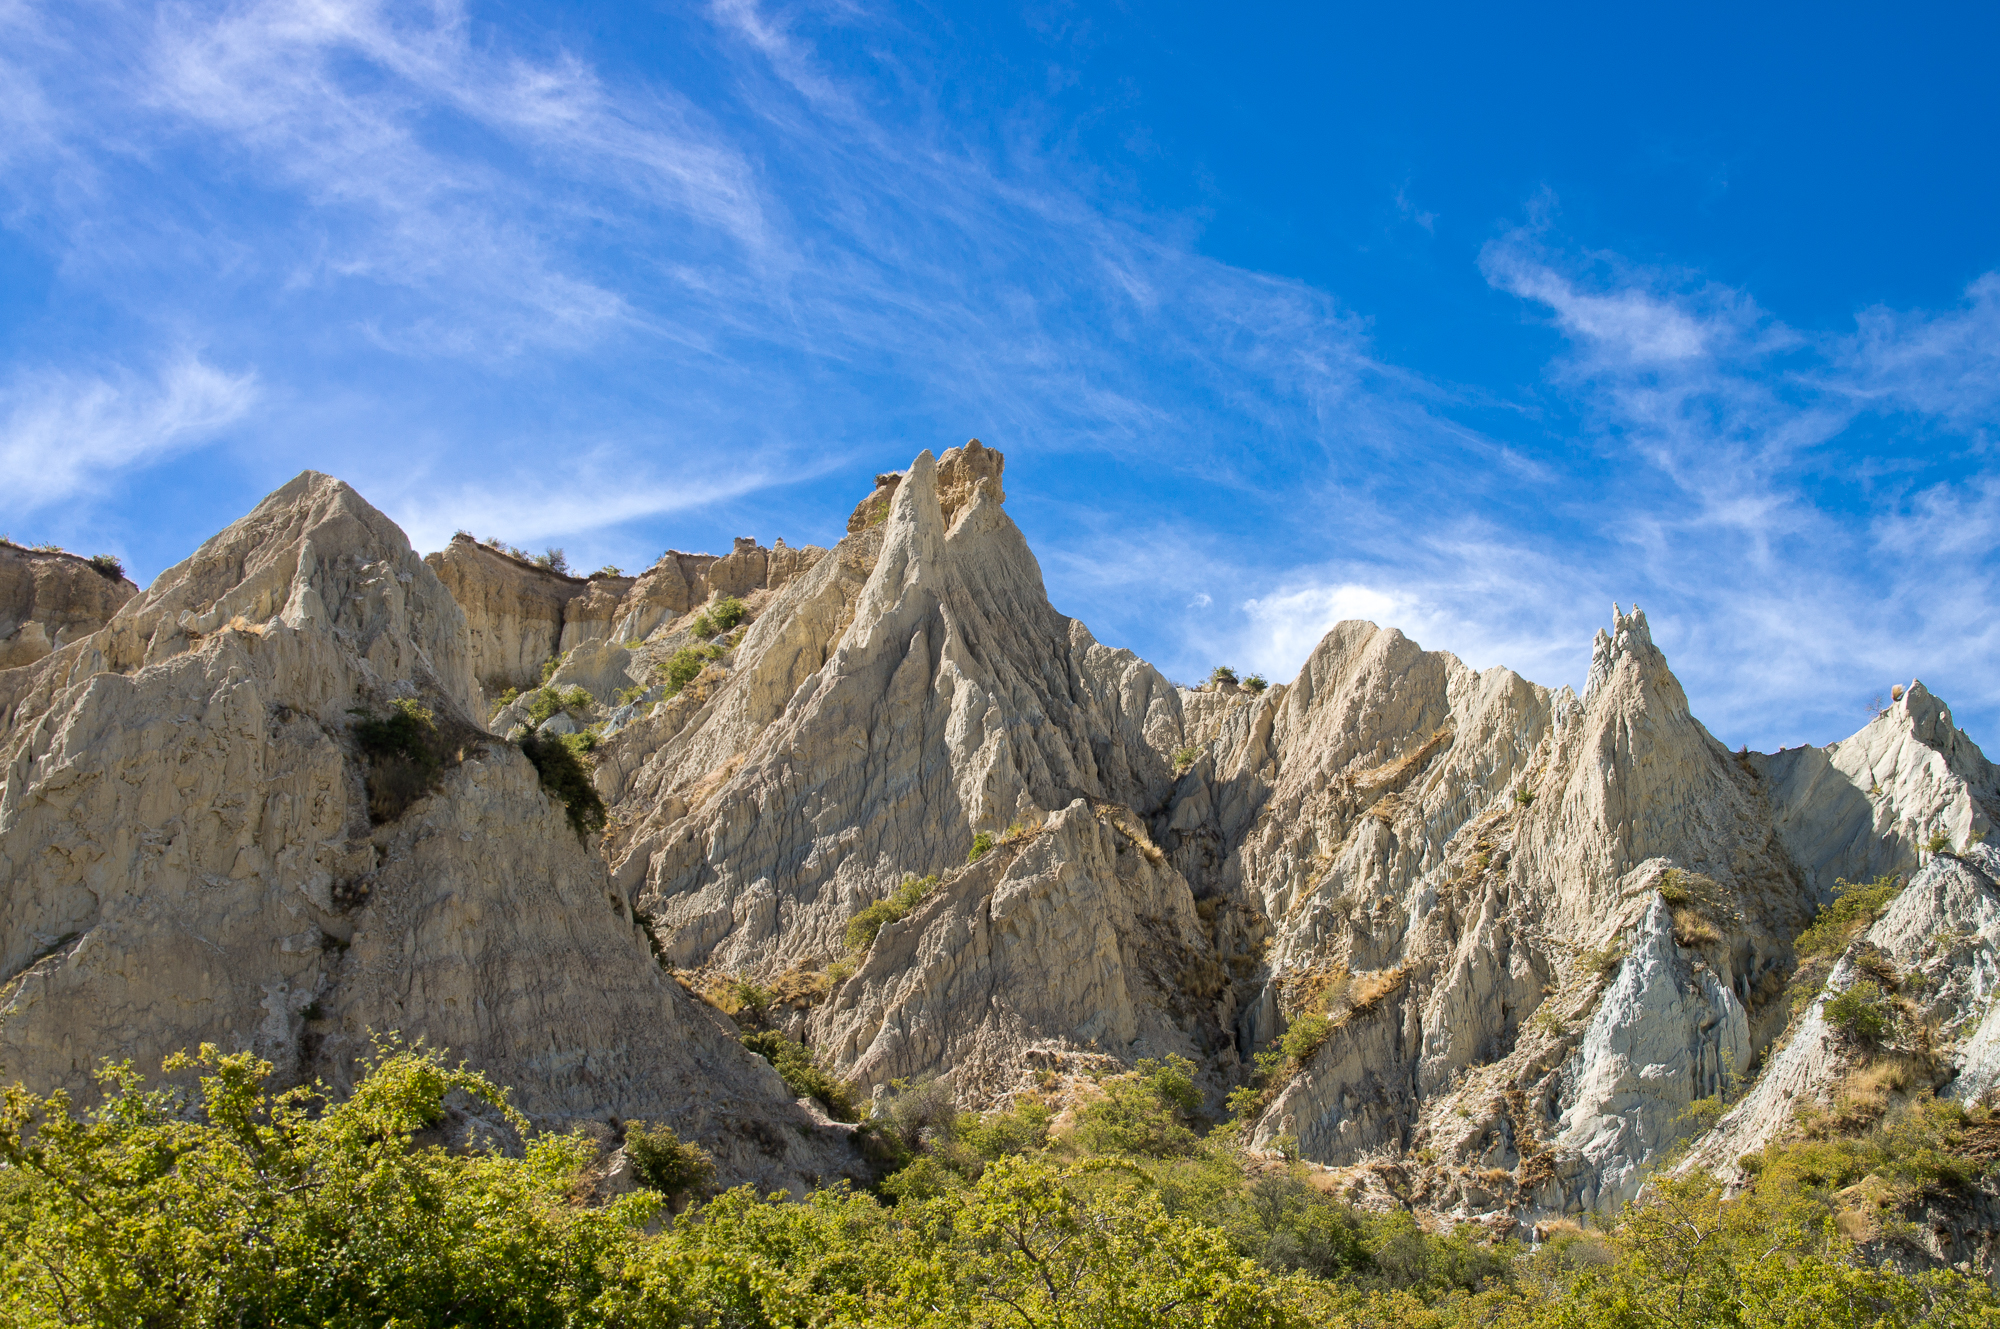 Omarama New Zealand  City pictures : Clay Cliffs, Omarama, New Zealand, Copyright Chris Gregory 2013